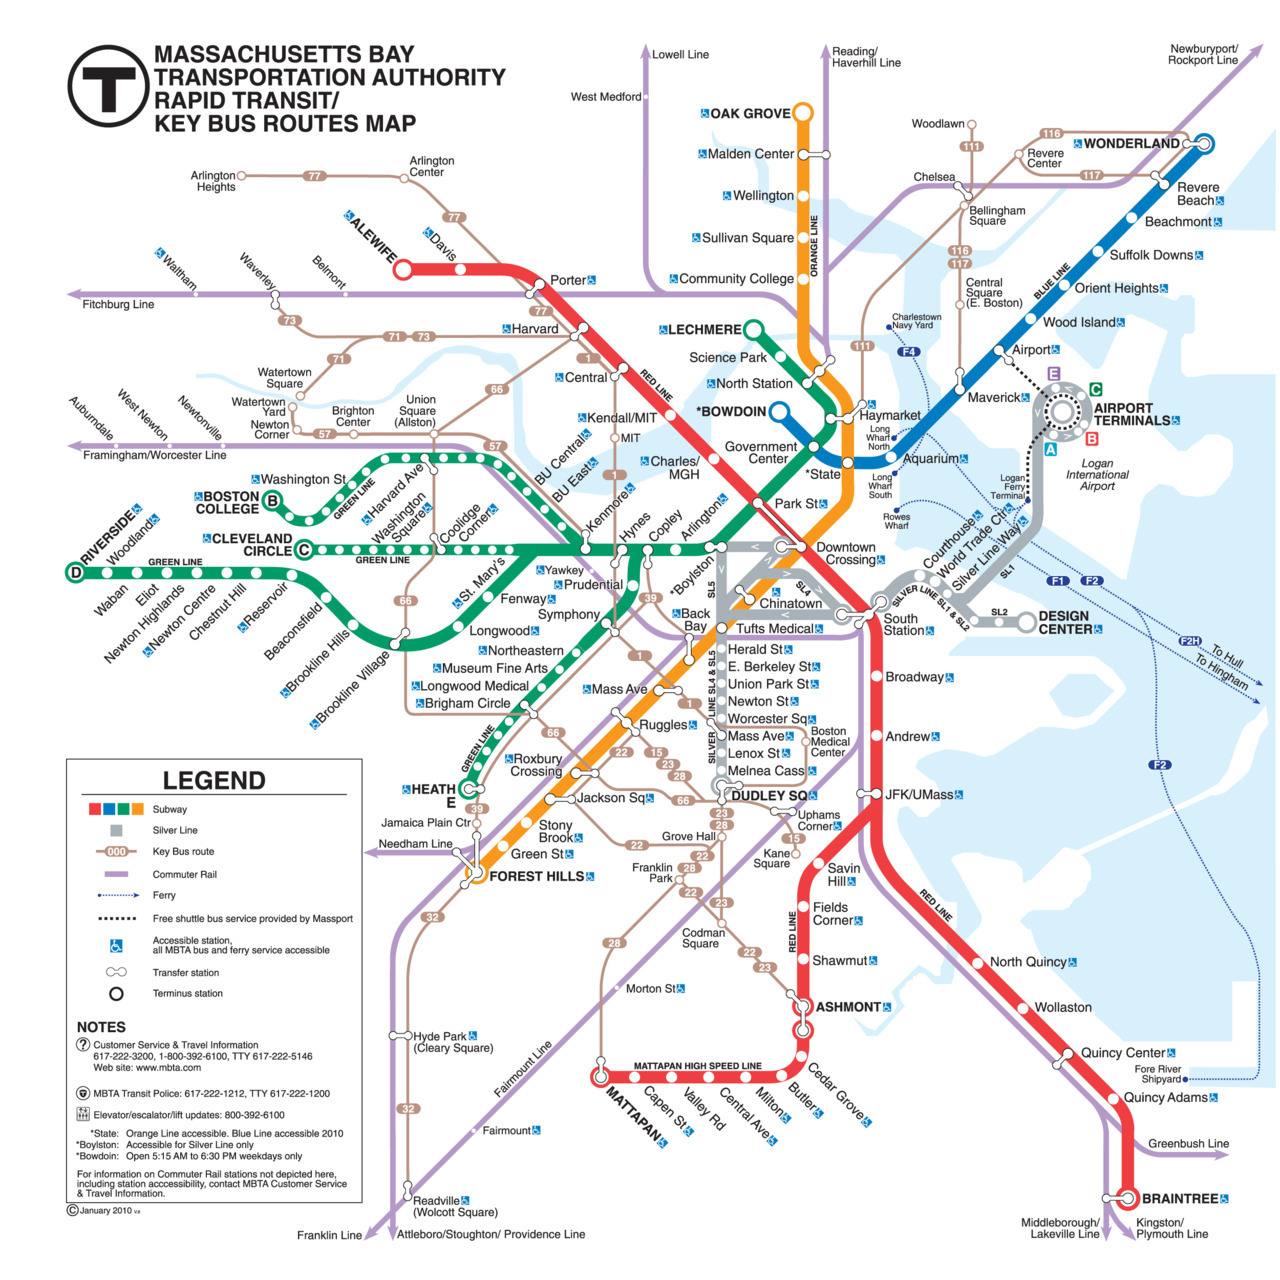 "Official Map: MBTA Rapid Transit/Key Bus Routes Map – Boston, Massachusetts I haven't really looked at the Boston MBTA map since I was there for a few days in the middle of 2008, but I certainly don't remember it looking as bad as this. I've always been mildly annoyed by the fact that not all the stations on the surface street sections of the Green Line are labelled, but my overall impression back then was of a solid, well-designed map. Just a few short years later, well-meaning but poorly thought-out additions have reduced the map to the horrible mess we see here. And the word ""addition"" reveals the real cause of this map's problems: new services have simply been slapped on top of the earlier map when it actually needed a full redesign to solve the problems that these additions created. If you strip the map down, you can see how these problems multiply with the addition of each new service. The subway lines by themselves actually make a nice, well-designed diagram. Then the commuter rail routes were added: these still fit within the framework fairly well. Then the Silver Line - by now, the designer is struggling to make things fit, resulting in an incomprehensible maze of directional arrows to the west of South Station. Finally, the ""key bus routes"" have to be shoehorned into a map that was never originally designed to show them, resulting in the routes weaving uncertainly all over the map. Oh, and did I mention the ferry routes and the airport shuttle buses? Have we been there? Yes, although I only used the ""T"" a couple of times, and only in the downtown area. What we like: Ambitious scope to show different transit modes. Unfortunately, looks very amateur compared to some of the maps currently coming out of Europe. I don't have a problem with the commuter rail lines not being shown along their entire length - they head a long way out and this is a map of Boston, not Massachusetts or New England! What we don't like: This is going to be a long list… I really dislike the knobby, multi-armed Transfer Stations - South Station and Forest Hills look incredibly messy, while Haymarket's angled bus stop circle clearly shows that the designer simply ran out of room and cheated to fit the station name in. Even worse are the transfer stations rotated to a random, non-45-degree angle (also cheating) to allow them to connect to a bus service (see Hynes, Coolidge Corner and Harvard Ave on the Green Line for examples). The Silver Line is one hot mess. It's not a subway line (it's actually BRT), but is shown as one. It's made up of four separate routes (SL 1 and 2 run to the east of South Station, SL 4 and 5 run to the west – with no direct interchange between the two sets of routes), but it's almost impossible to decipher this on the map. As noted before, the directional arrows on the SL4/5 routes don't really help at all. Lots of stops on SL1 and SL2 simply aren't shown at all - not even a dot! But the bit I hate the most is where SL1 loops around the Logan Airport Terminals - the connecting line joins on against the directional flow of the arrows: hideously counterintuitive and ugly. The less said about the presentation of the bus routes, the better. Cramped and ugly. The way the curve of the 32 doesn't nestle into the curve of the commuter rail line to the south-west of Forest Hills catches my eye (in a bad way) every time. My final major complaint is the representation of Boston's geography - on a diagrammatic map like this, I'm almost never in favour of ""realistic"" representations of shorelines and rivers, seeing as they have to be seriously distorted to fit around the diagram anyway! I believe they should also be represented in a simplified form to add to the clarity of the map. Here, we have the seemingly farcical image of the F2 ferry passing over what looks like a spit of land to reach its destination in Quincy (it's actually going under a bridge, but this map doesn't draw that distinction at all). Our rating: Well meaning, but seriously flawed. Needs to be rebuilt from the ground up. With the addition of the Silver Line, the centre of the city needs far more space given to it, while the edges can afford to be compressed a bit to compensate (look how much room the Braintree leg of the Red Line has, for example). One-and-a-half stars.  (Source: Official MBTA website)"